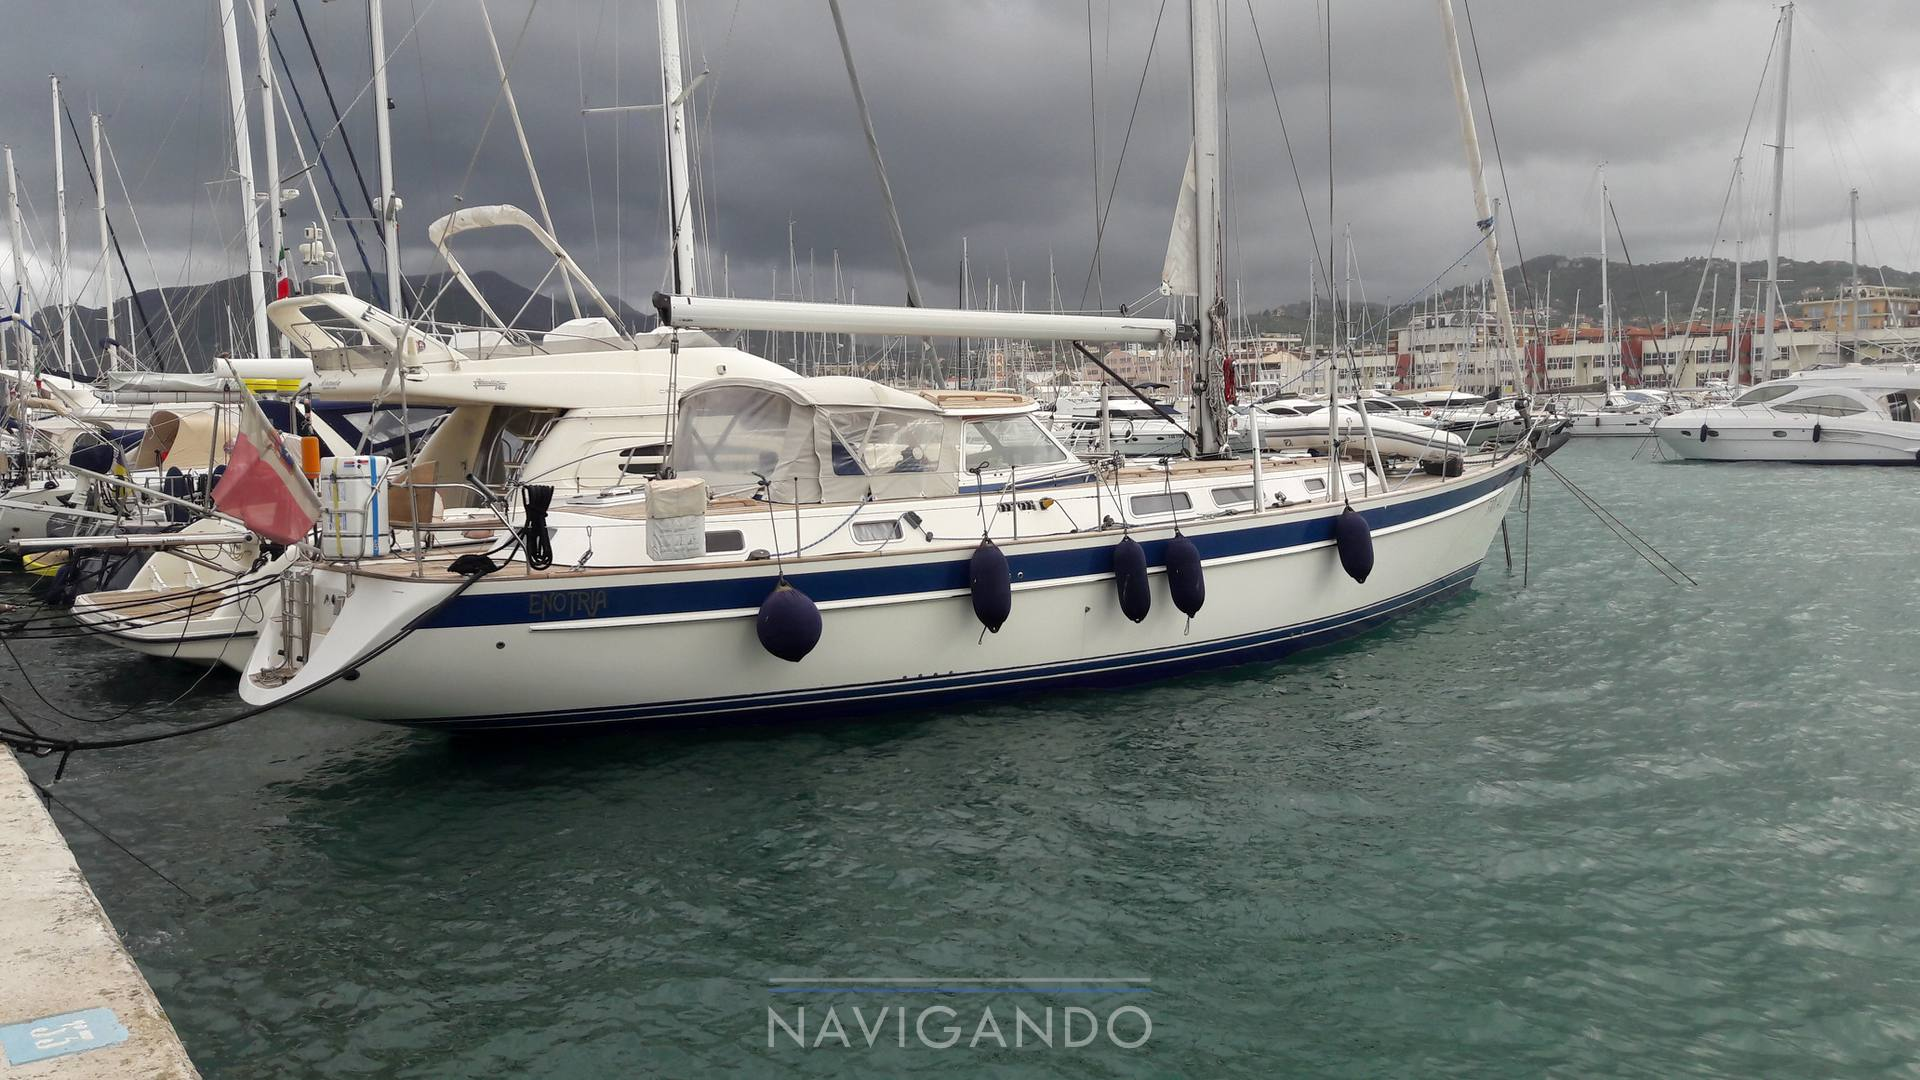 Halberg-grassy 53 ht Sailing boat used for sale